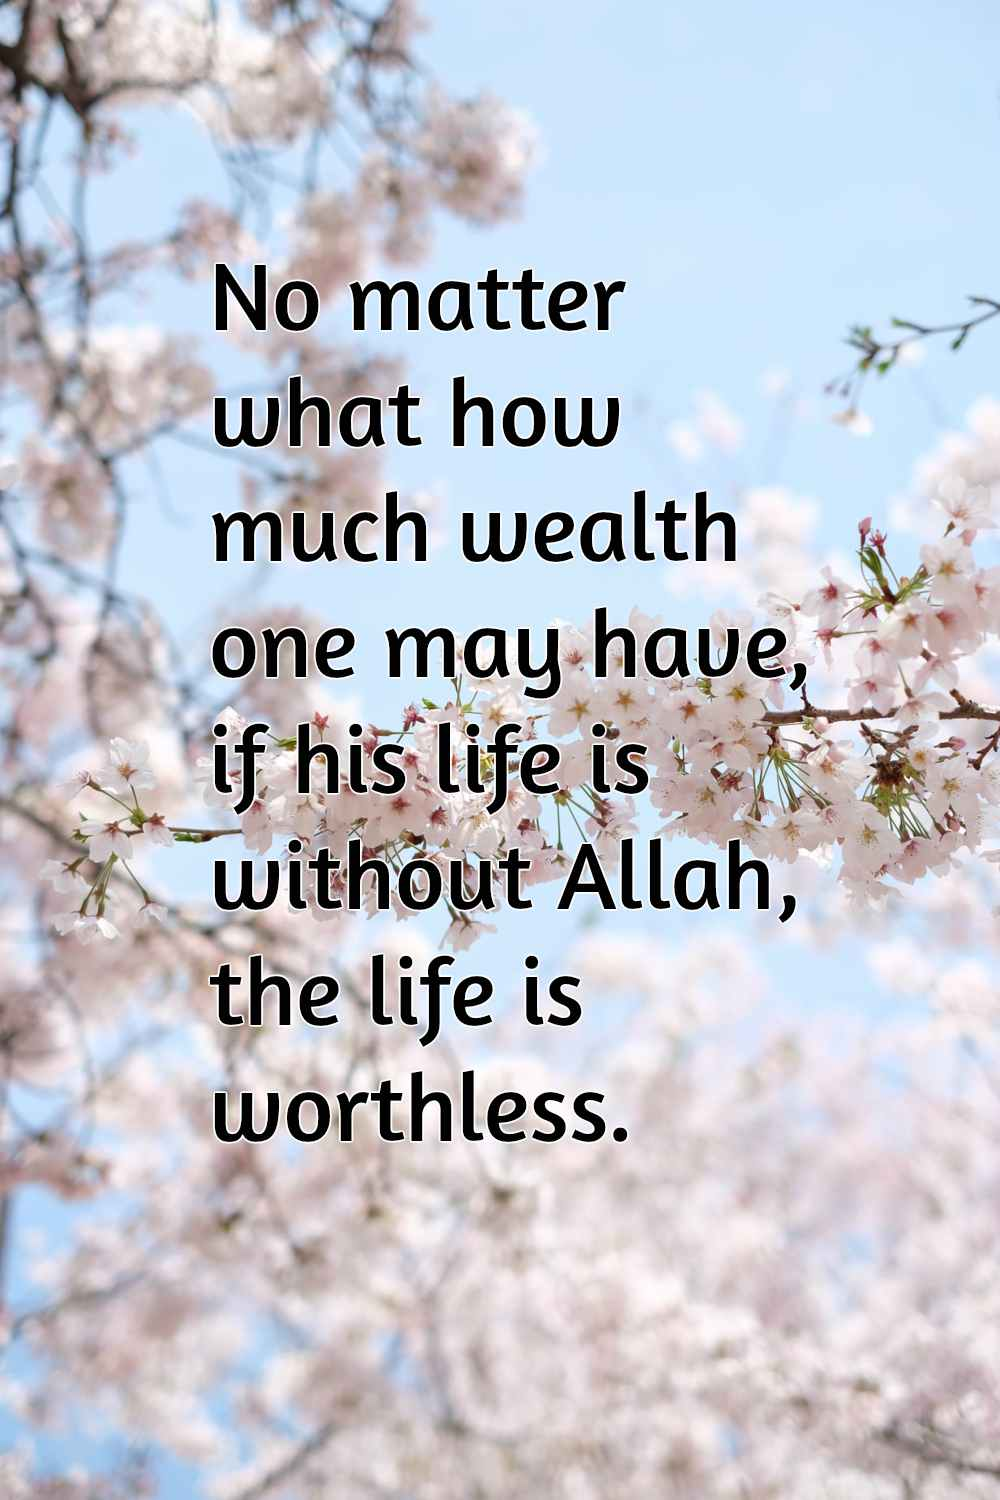 This islamic insperational qoutes app will show one new islamic motivation quote each day. Inspirational Islamic Quotes And Messages About Life Webtrickle